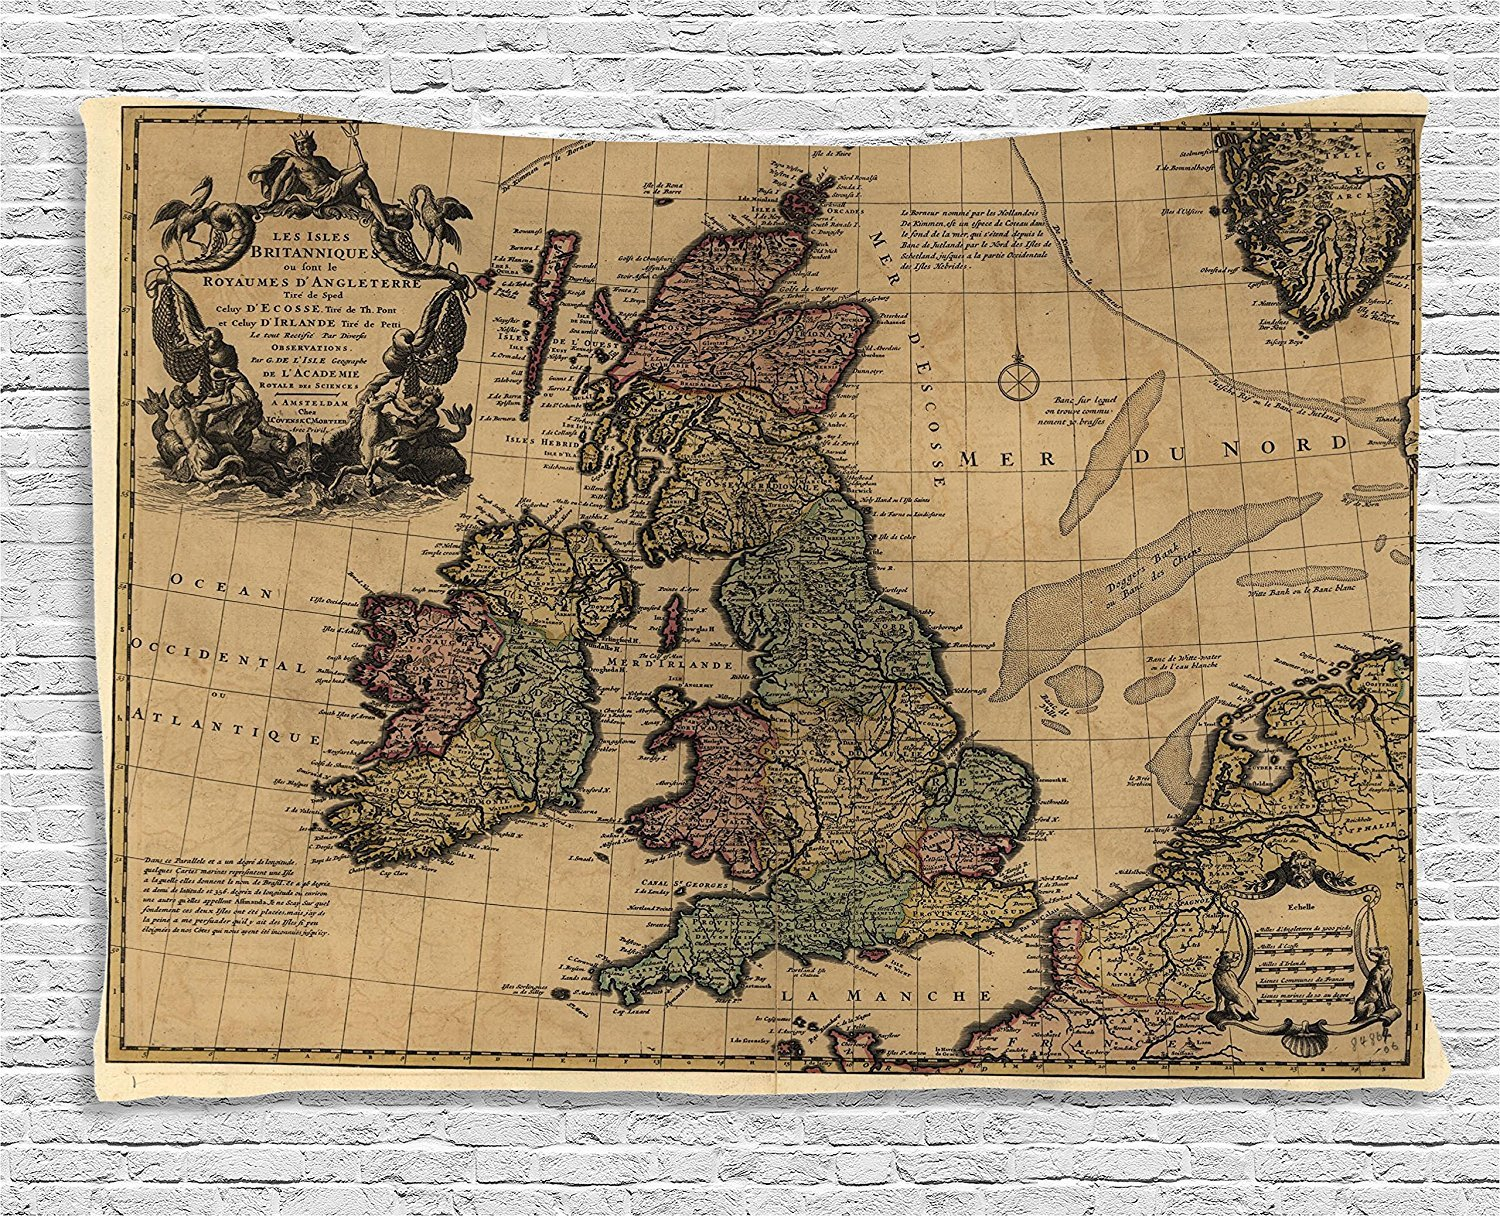 British Islands Scotland England European History Books Britain Grungy Artwork Ambesonne Wanderlust Decor Collection 80W X 60L Inch Bedroom Living Room Dorm Wall Hanging Tapestry